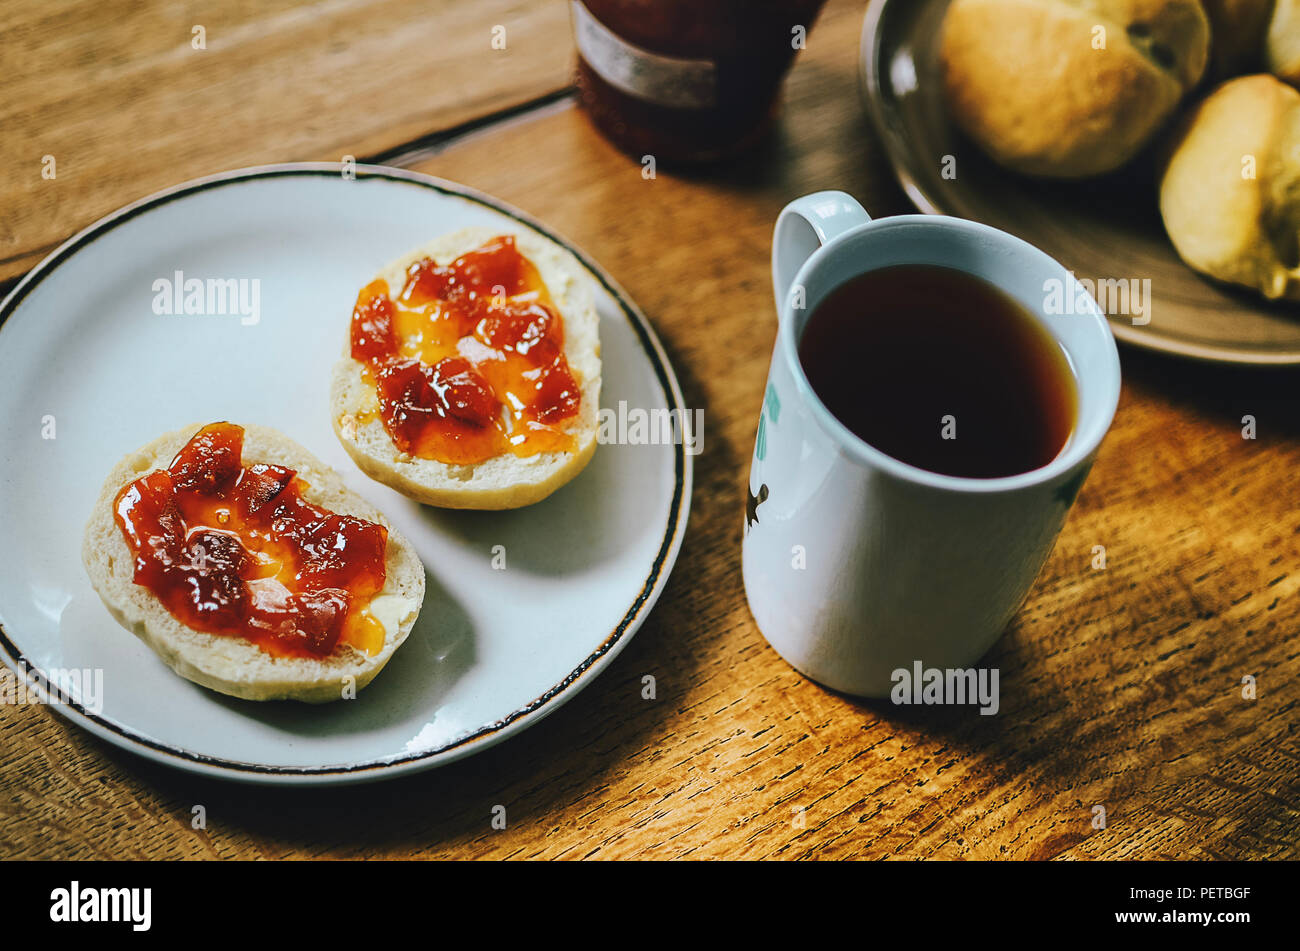 Cup Of Black Tea With Red Jam On Bread Buns For Tasty Breakfast Simple And Delicious Breakfast Idea Wooden Table Background Stock Photo Alamy